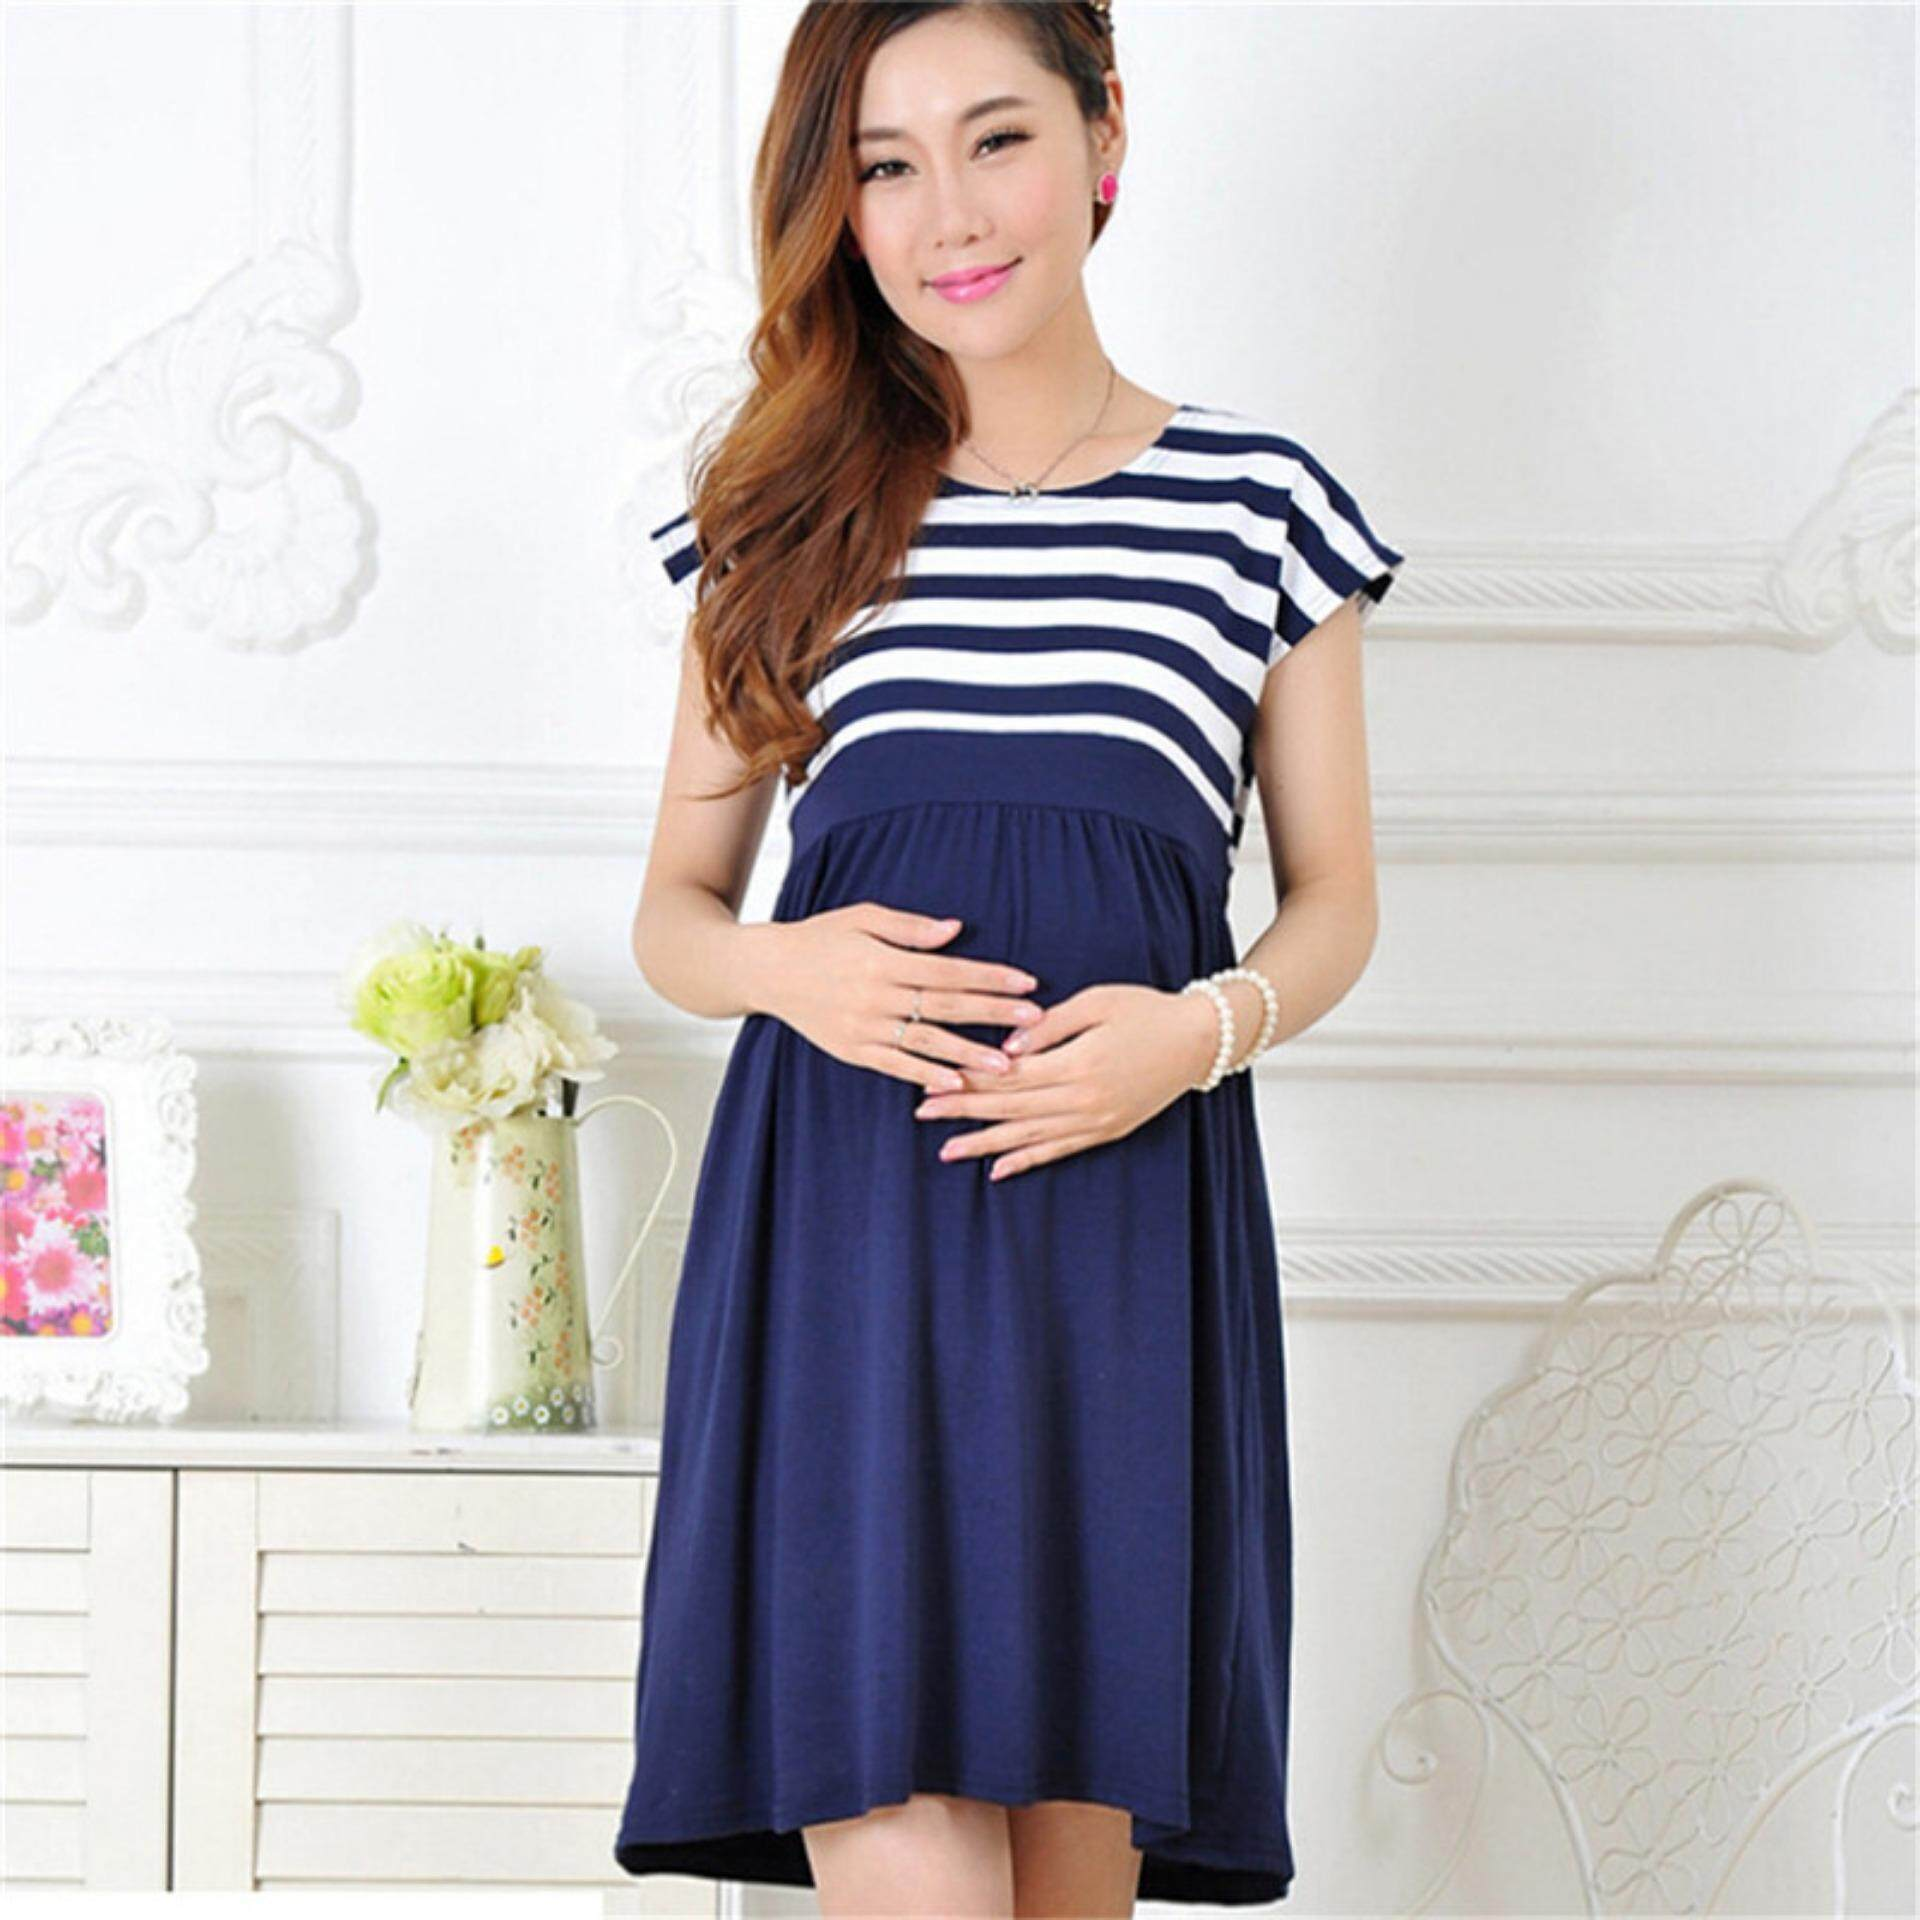 Stripe Pregnant Women Dress Short Sleeve Casual Maternity Dress Mother  Clothes Navy Blue Int XL 8c5438ef37f3